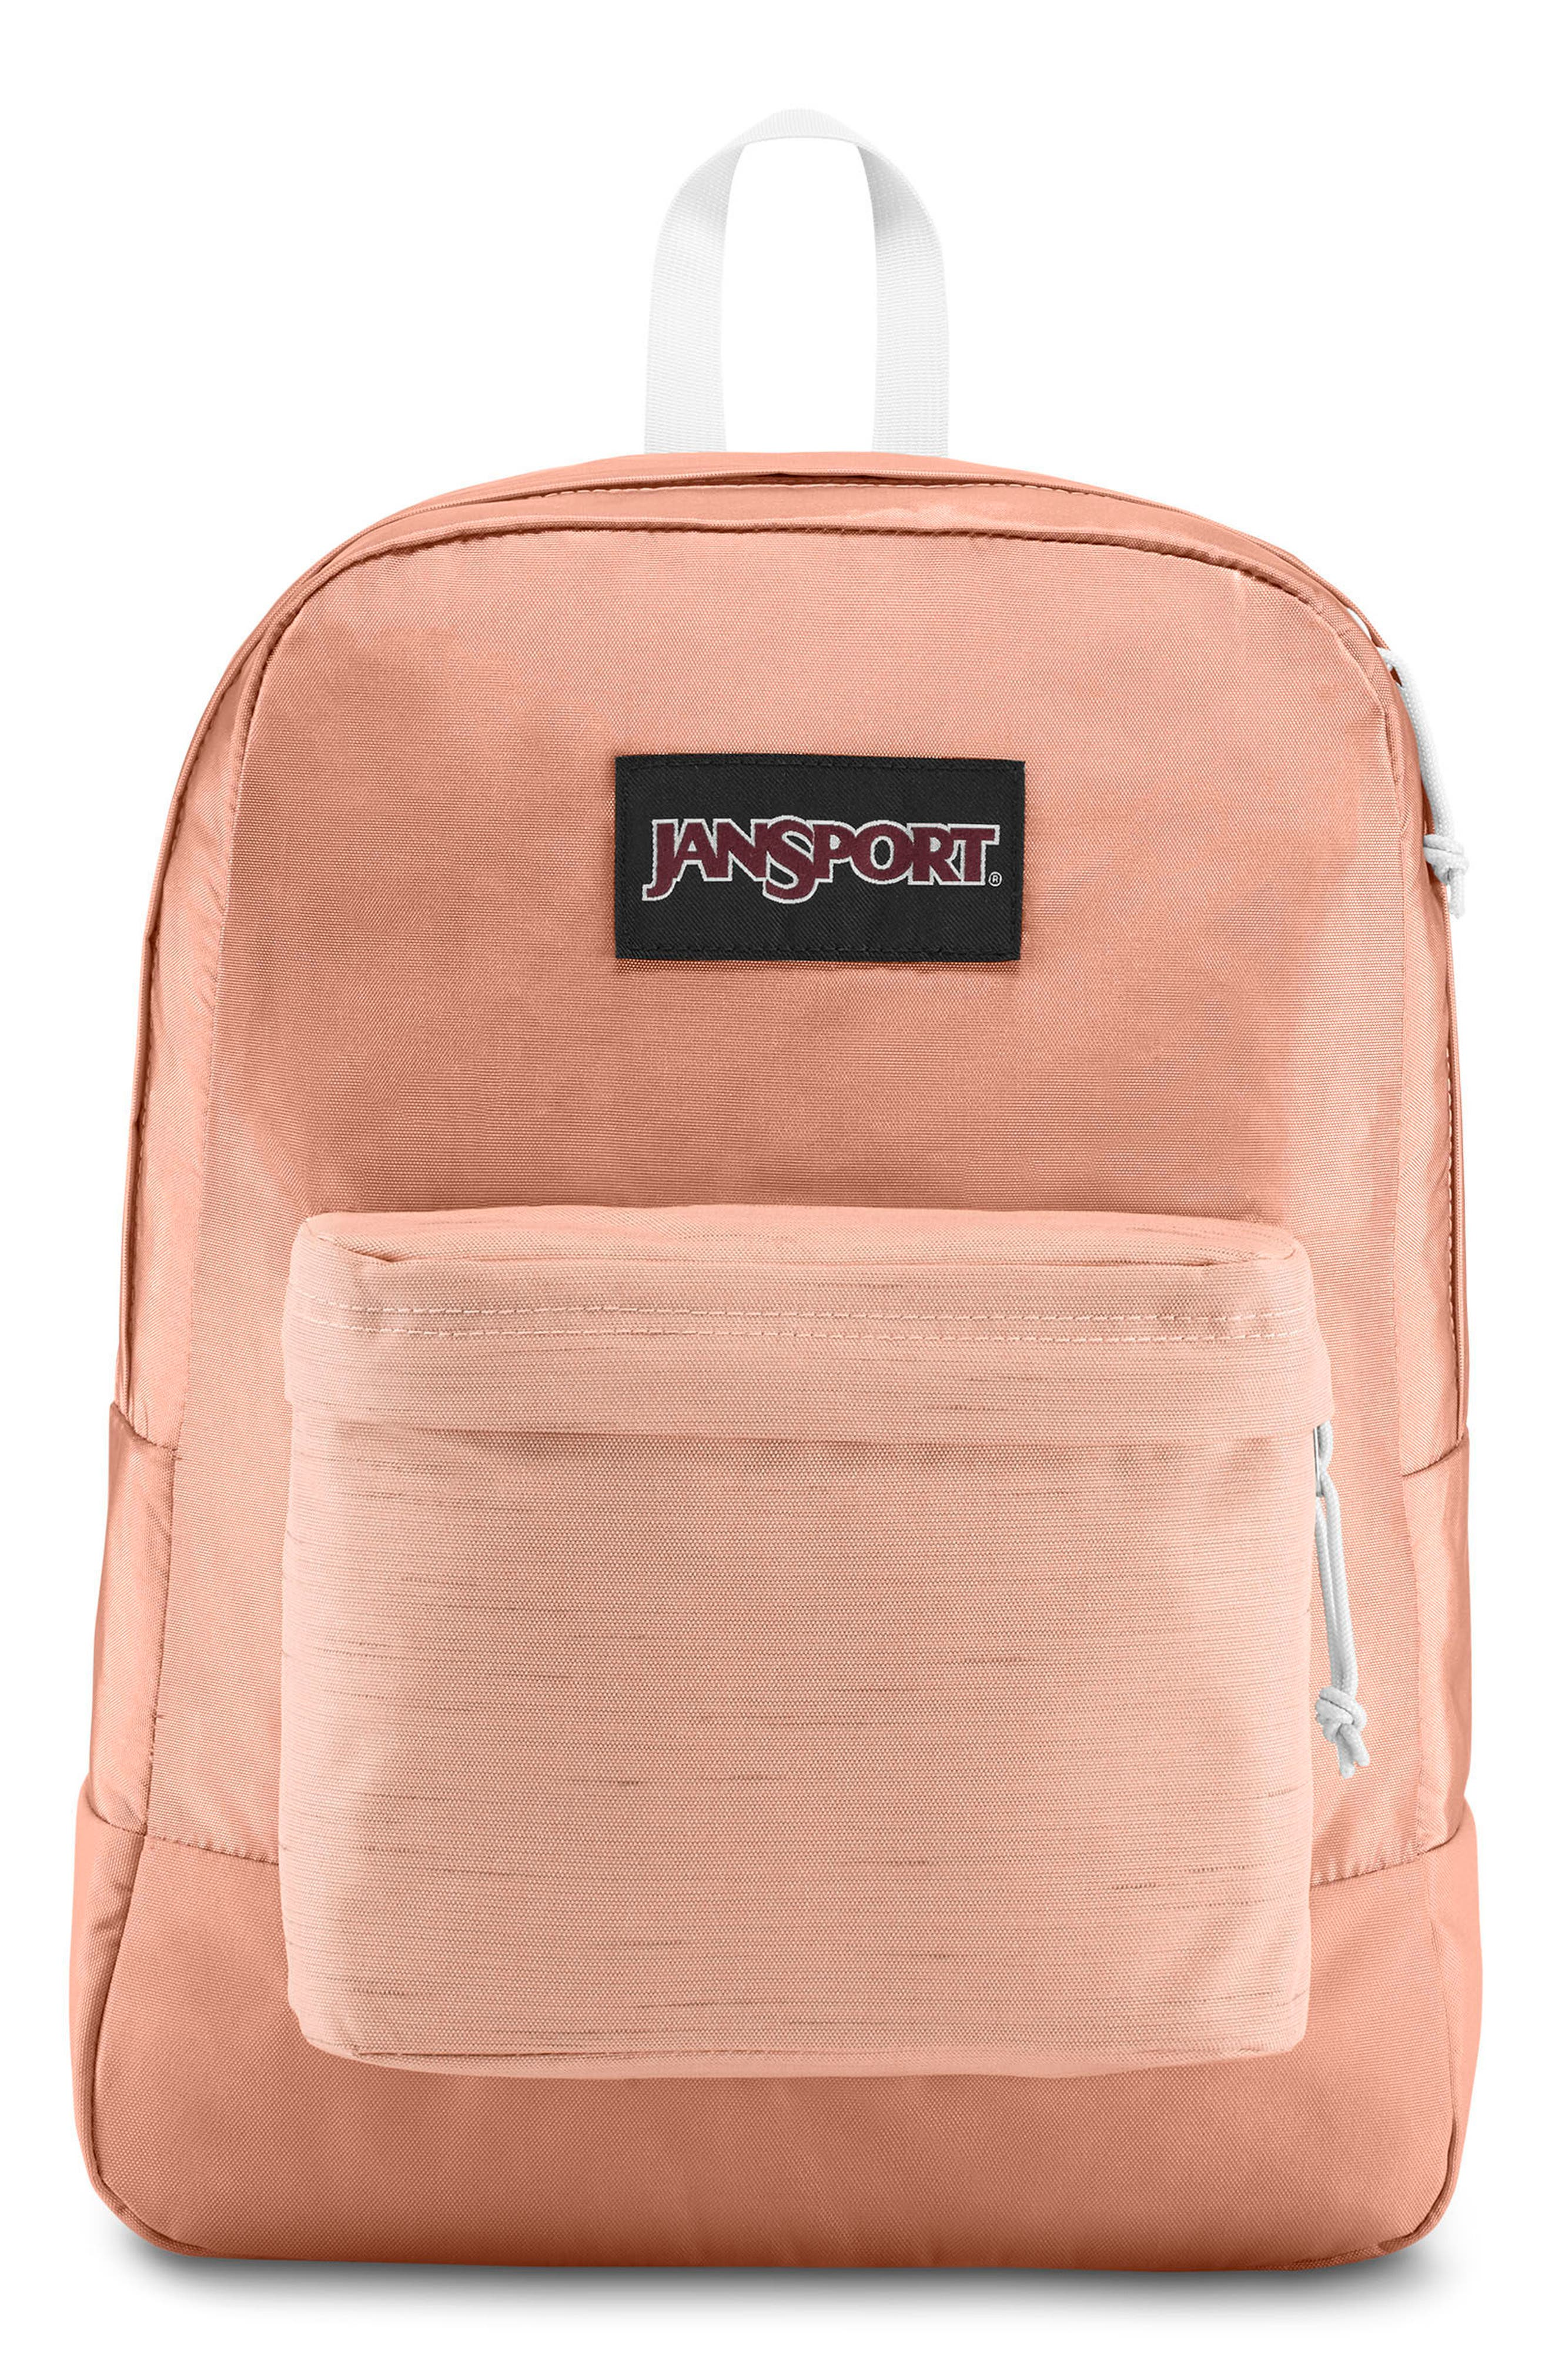 JANSPORT BLACK LABEL SUPERBREAK BACKPACK - PINK